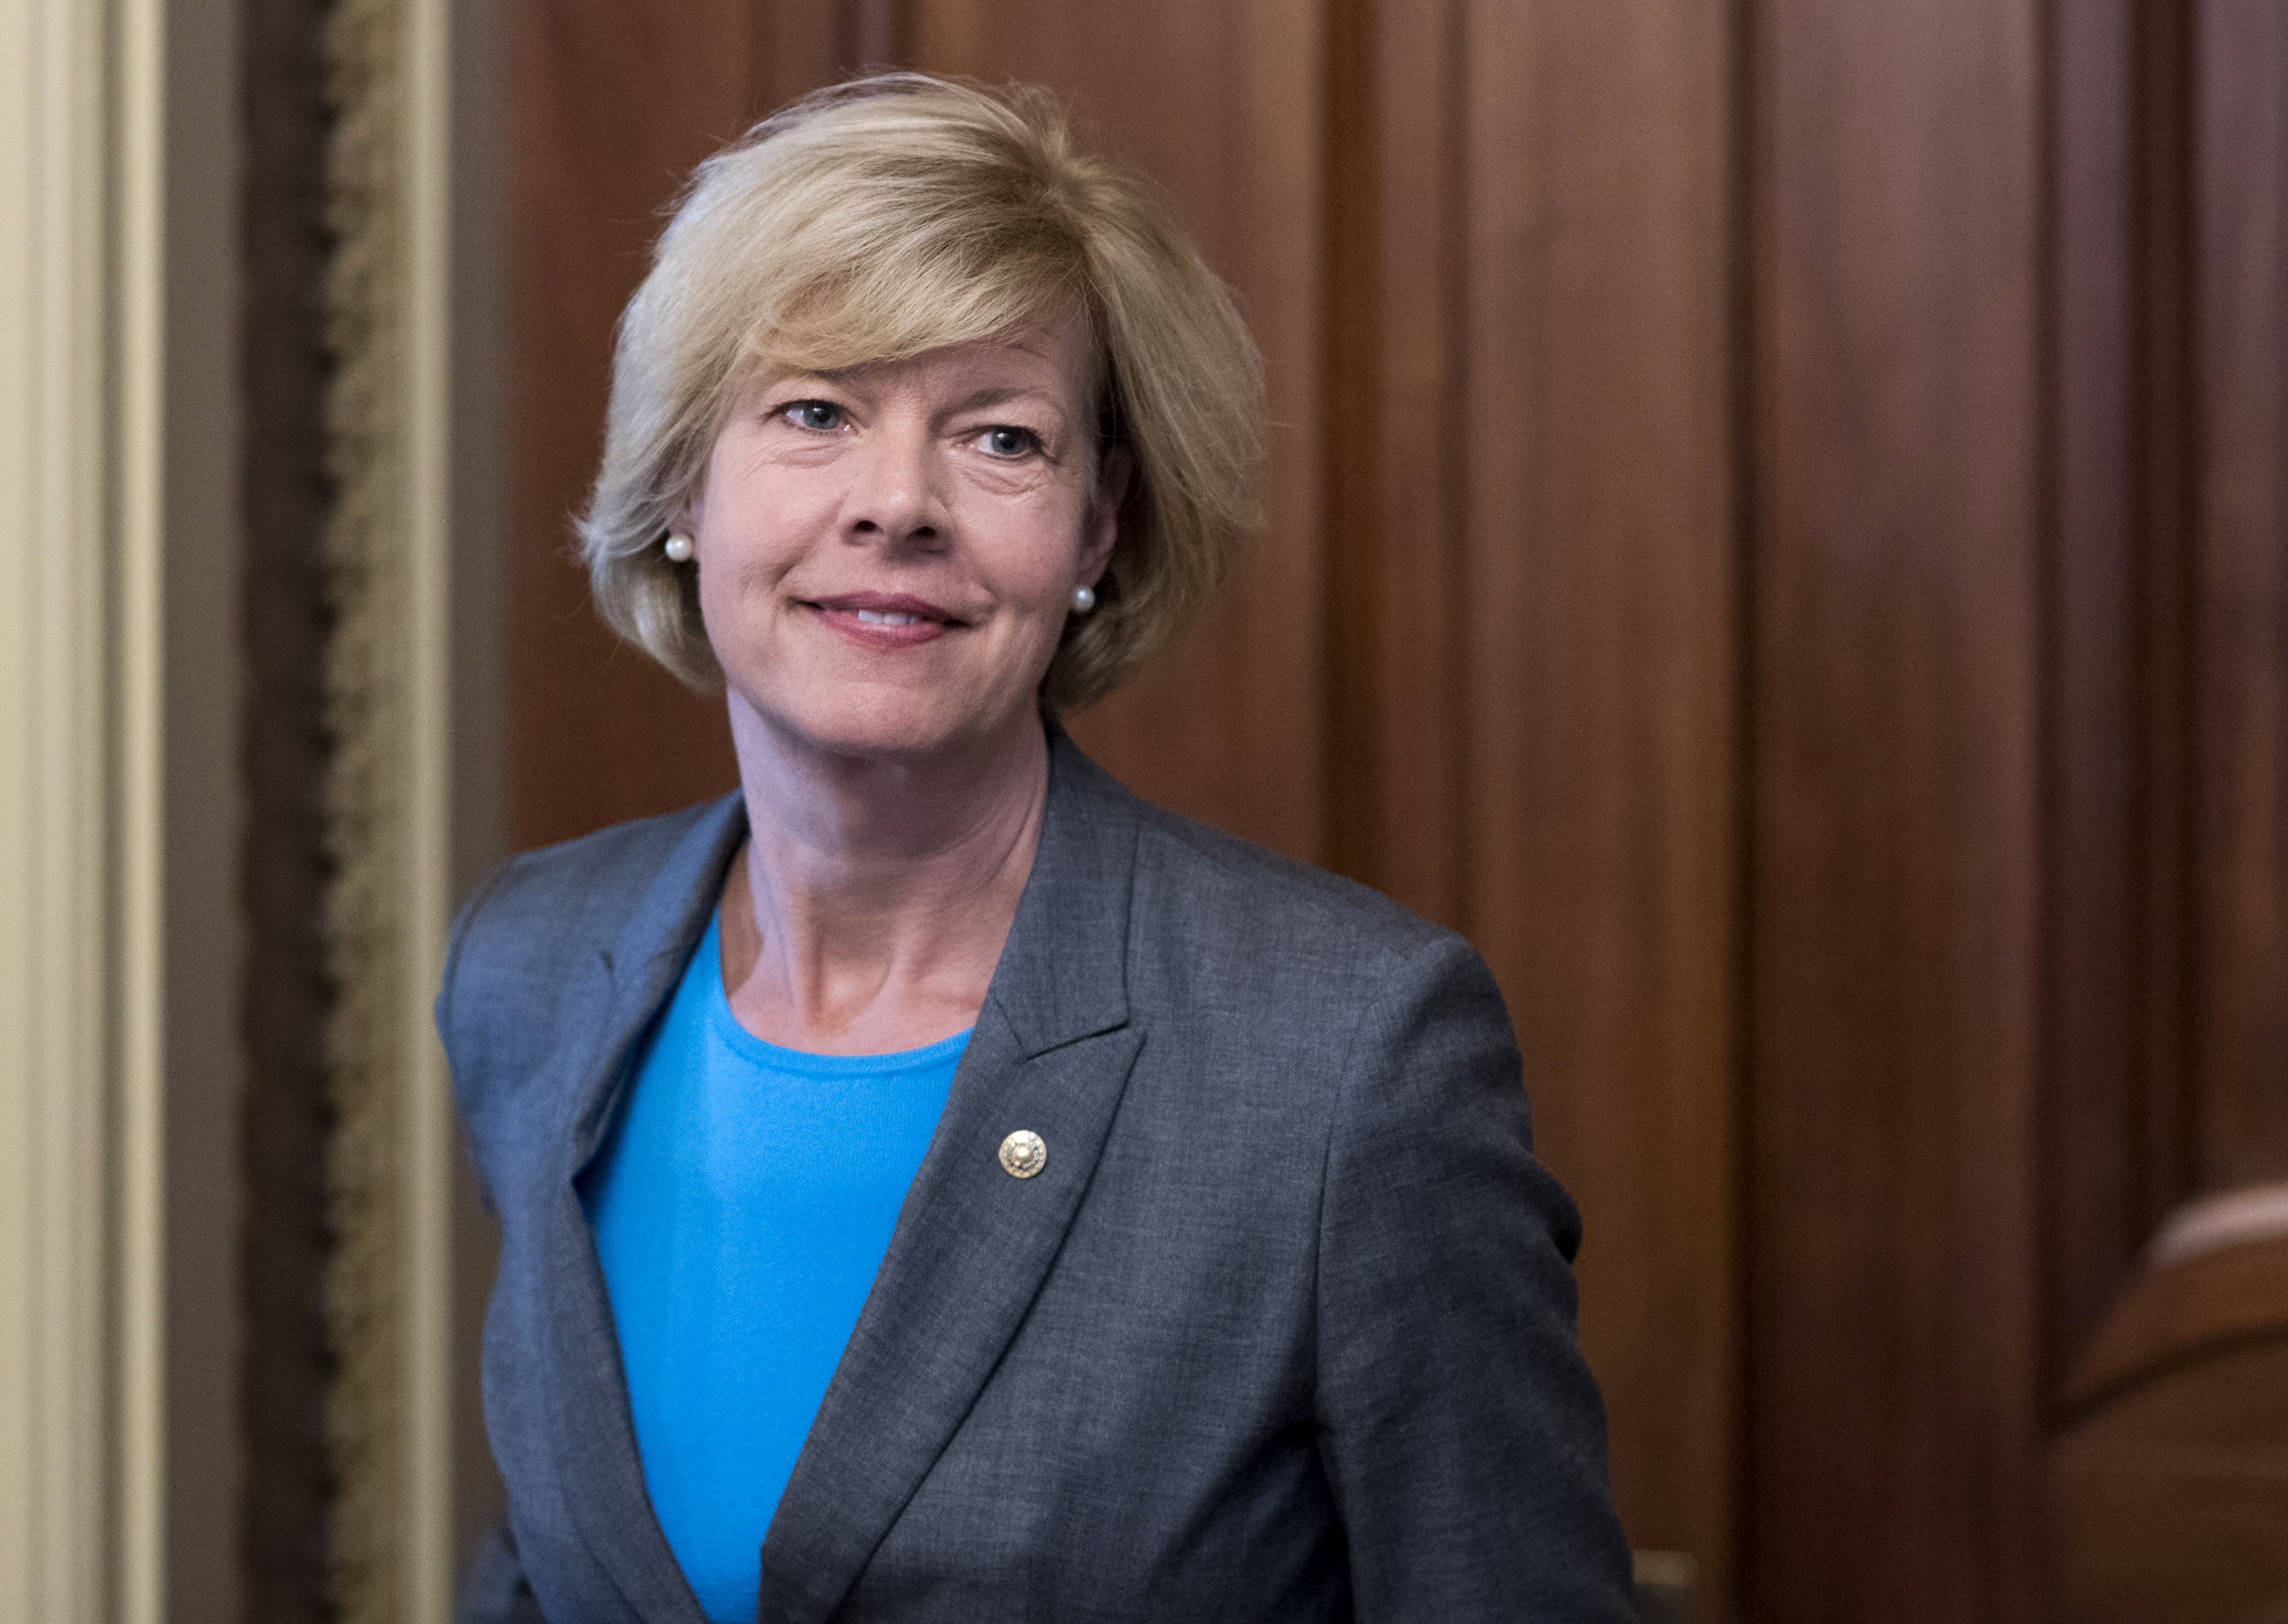 Democratic senators introduce bill to protect LGBTQ youth from abuse